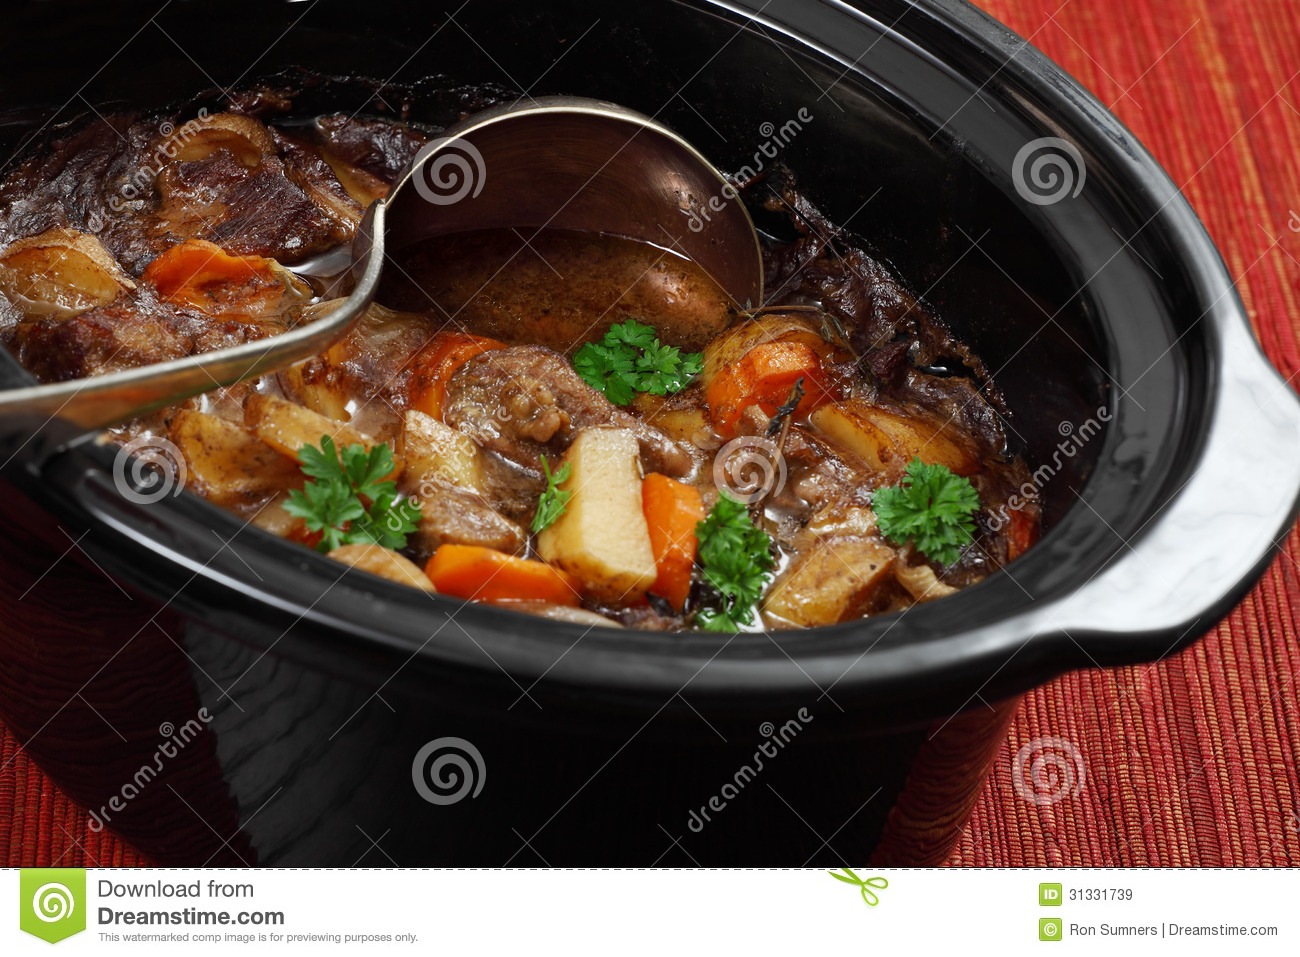 Photo of Irish Stew or Guinness Stew made in a crockpot or slow cooker